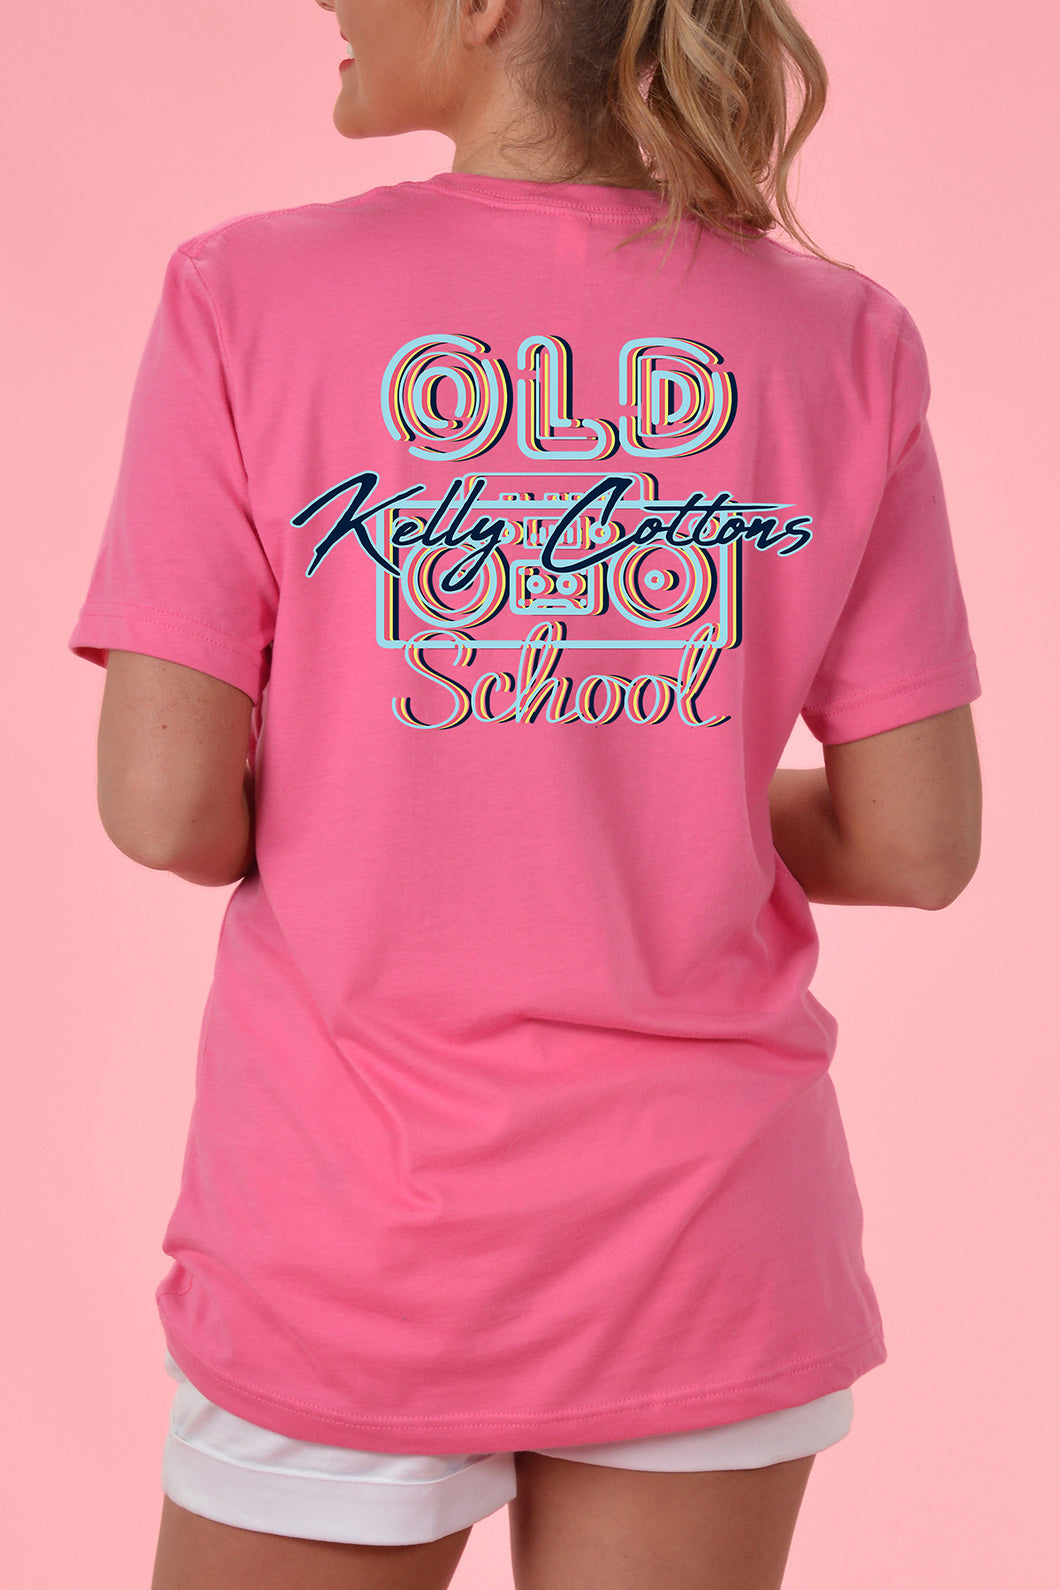 Old School - Kelly Cottons